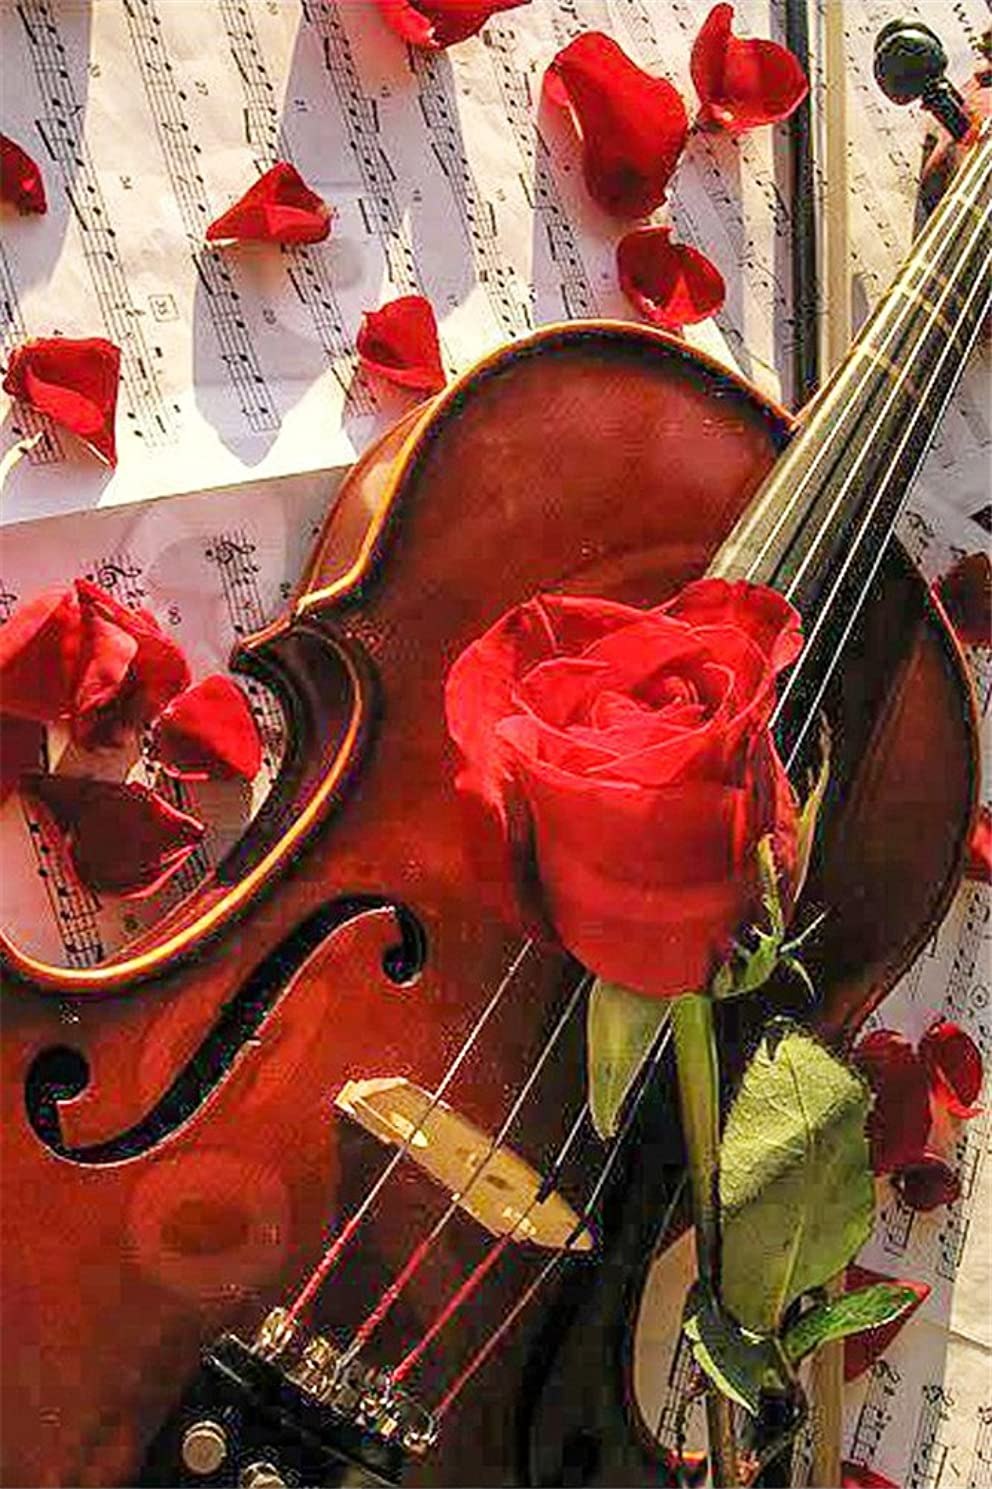 CaptainCrafts DIY 5D Diamond Painting by Number Kits Full Drill Diamond Painting - Rose Flower Violin (20X30cm/8X12inch)